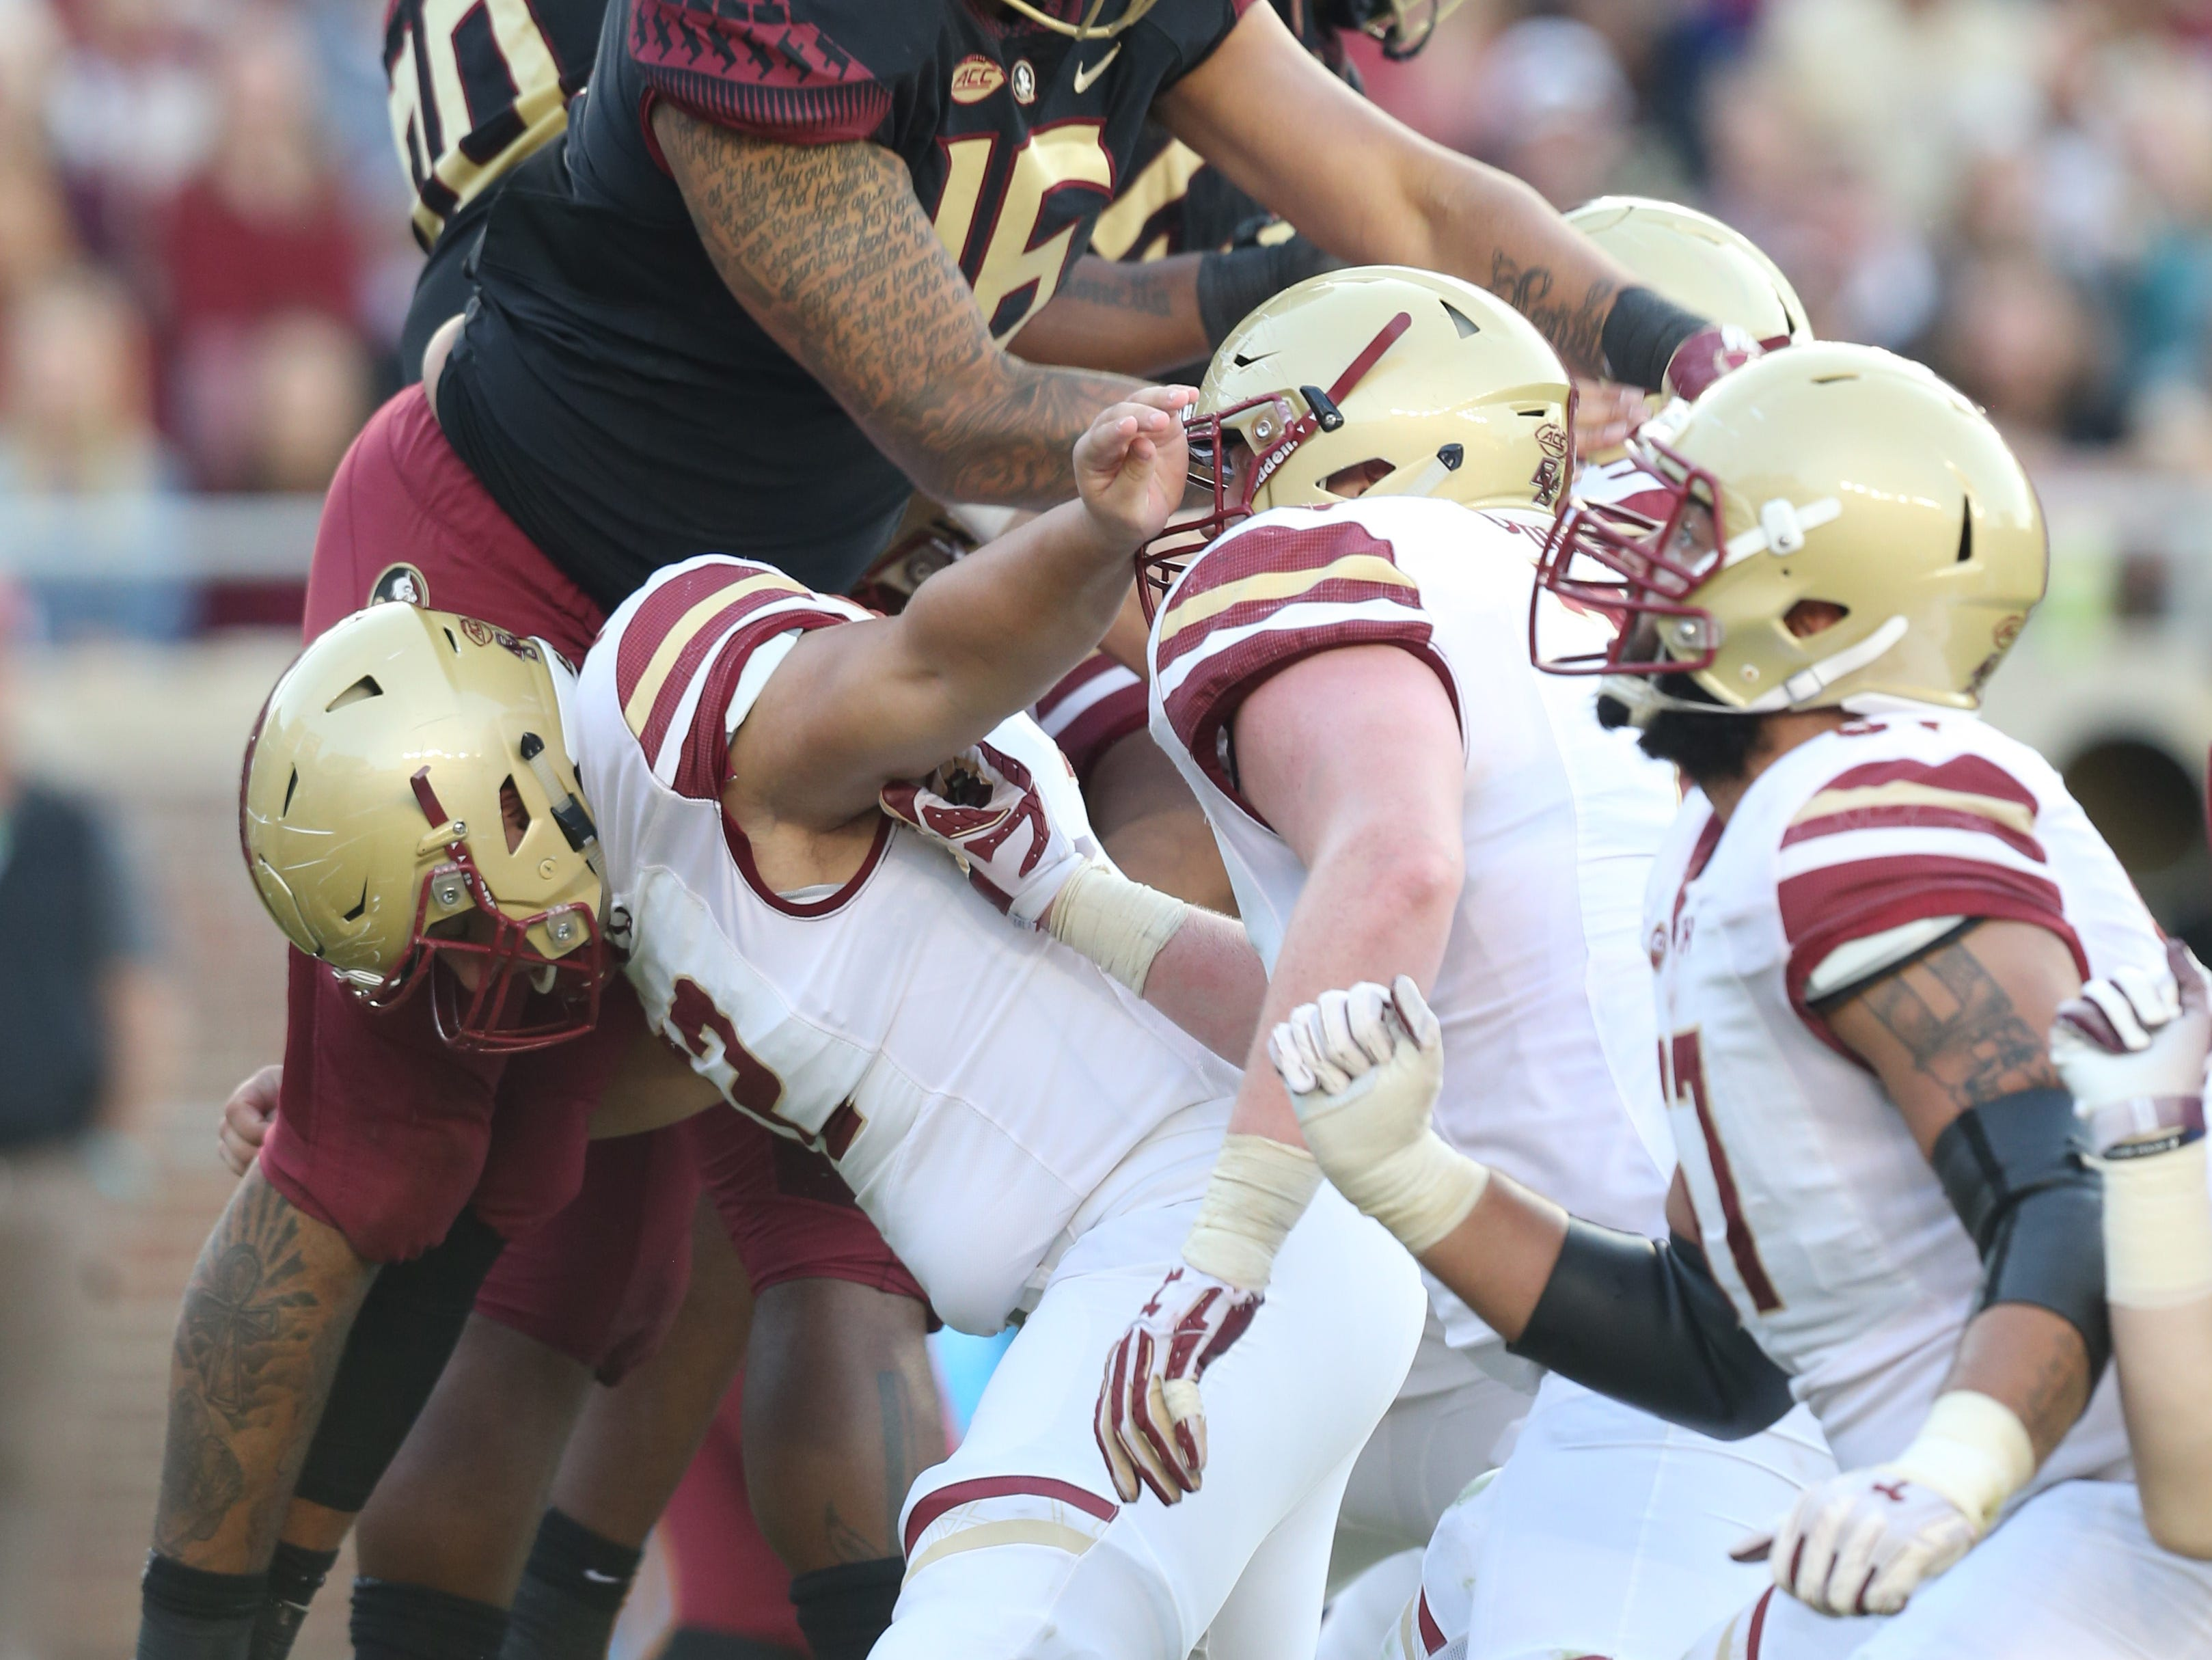 The Seminoles attempt to block the extra point as the Florida State Seminoles face off against the Boston College Eagles at Doak S. Campbell Stadium, Saturday, Nov. 17, 2018.